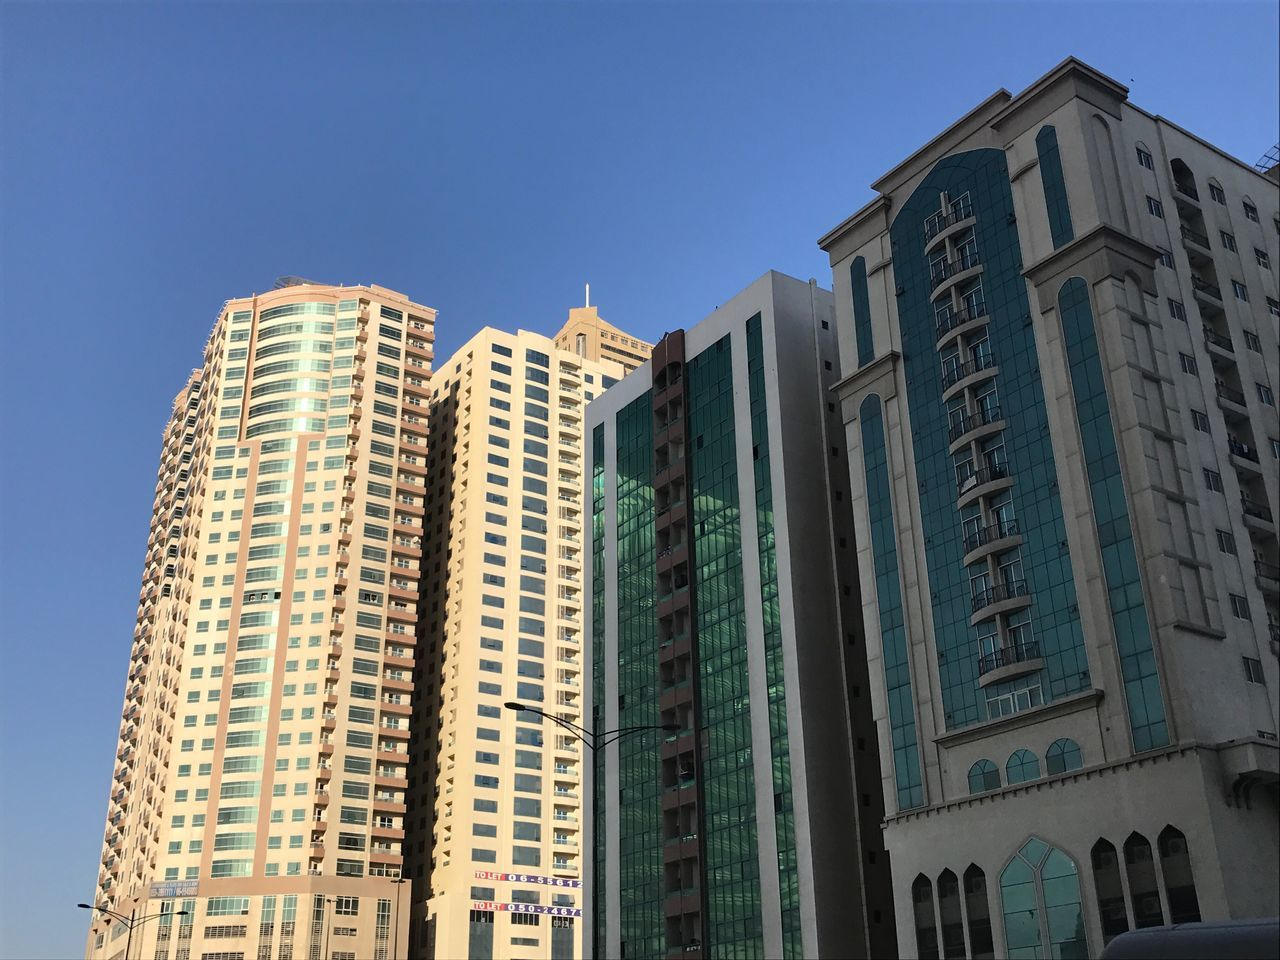 architecture, building exterior, built structure, low angle view, city, skyscraper, day, no people, blue, clear sky, modern, outdoors, cityscape, sky